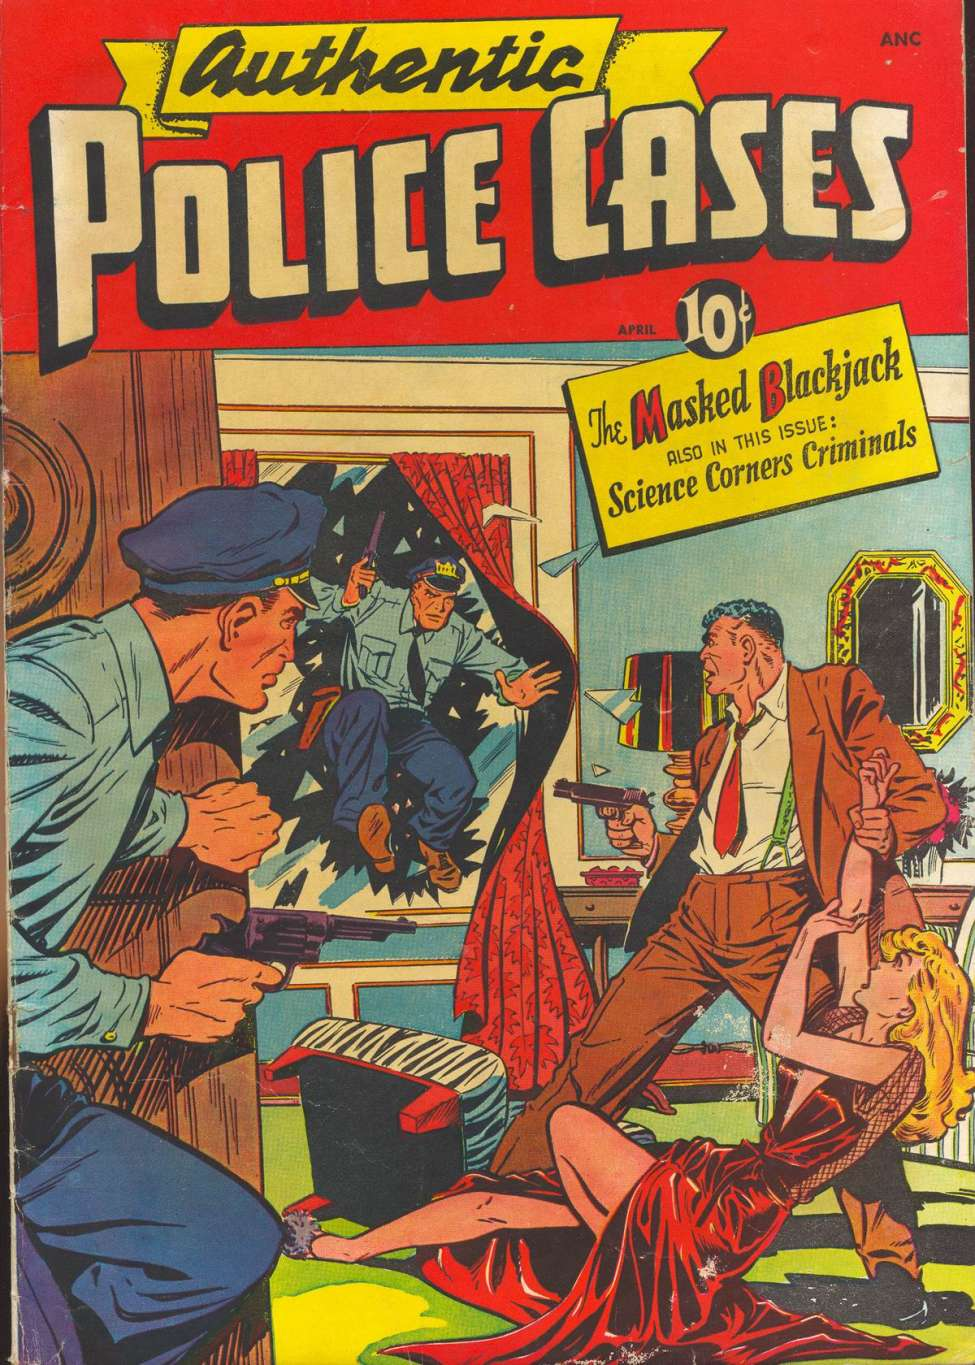 Authentic Police Cases #7, St. John